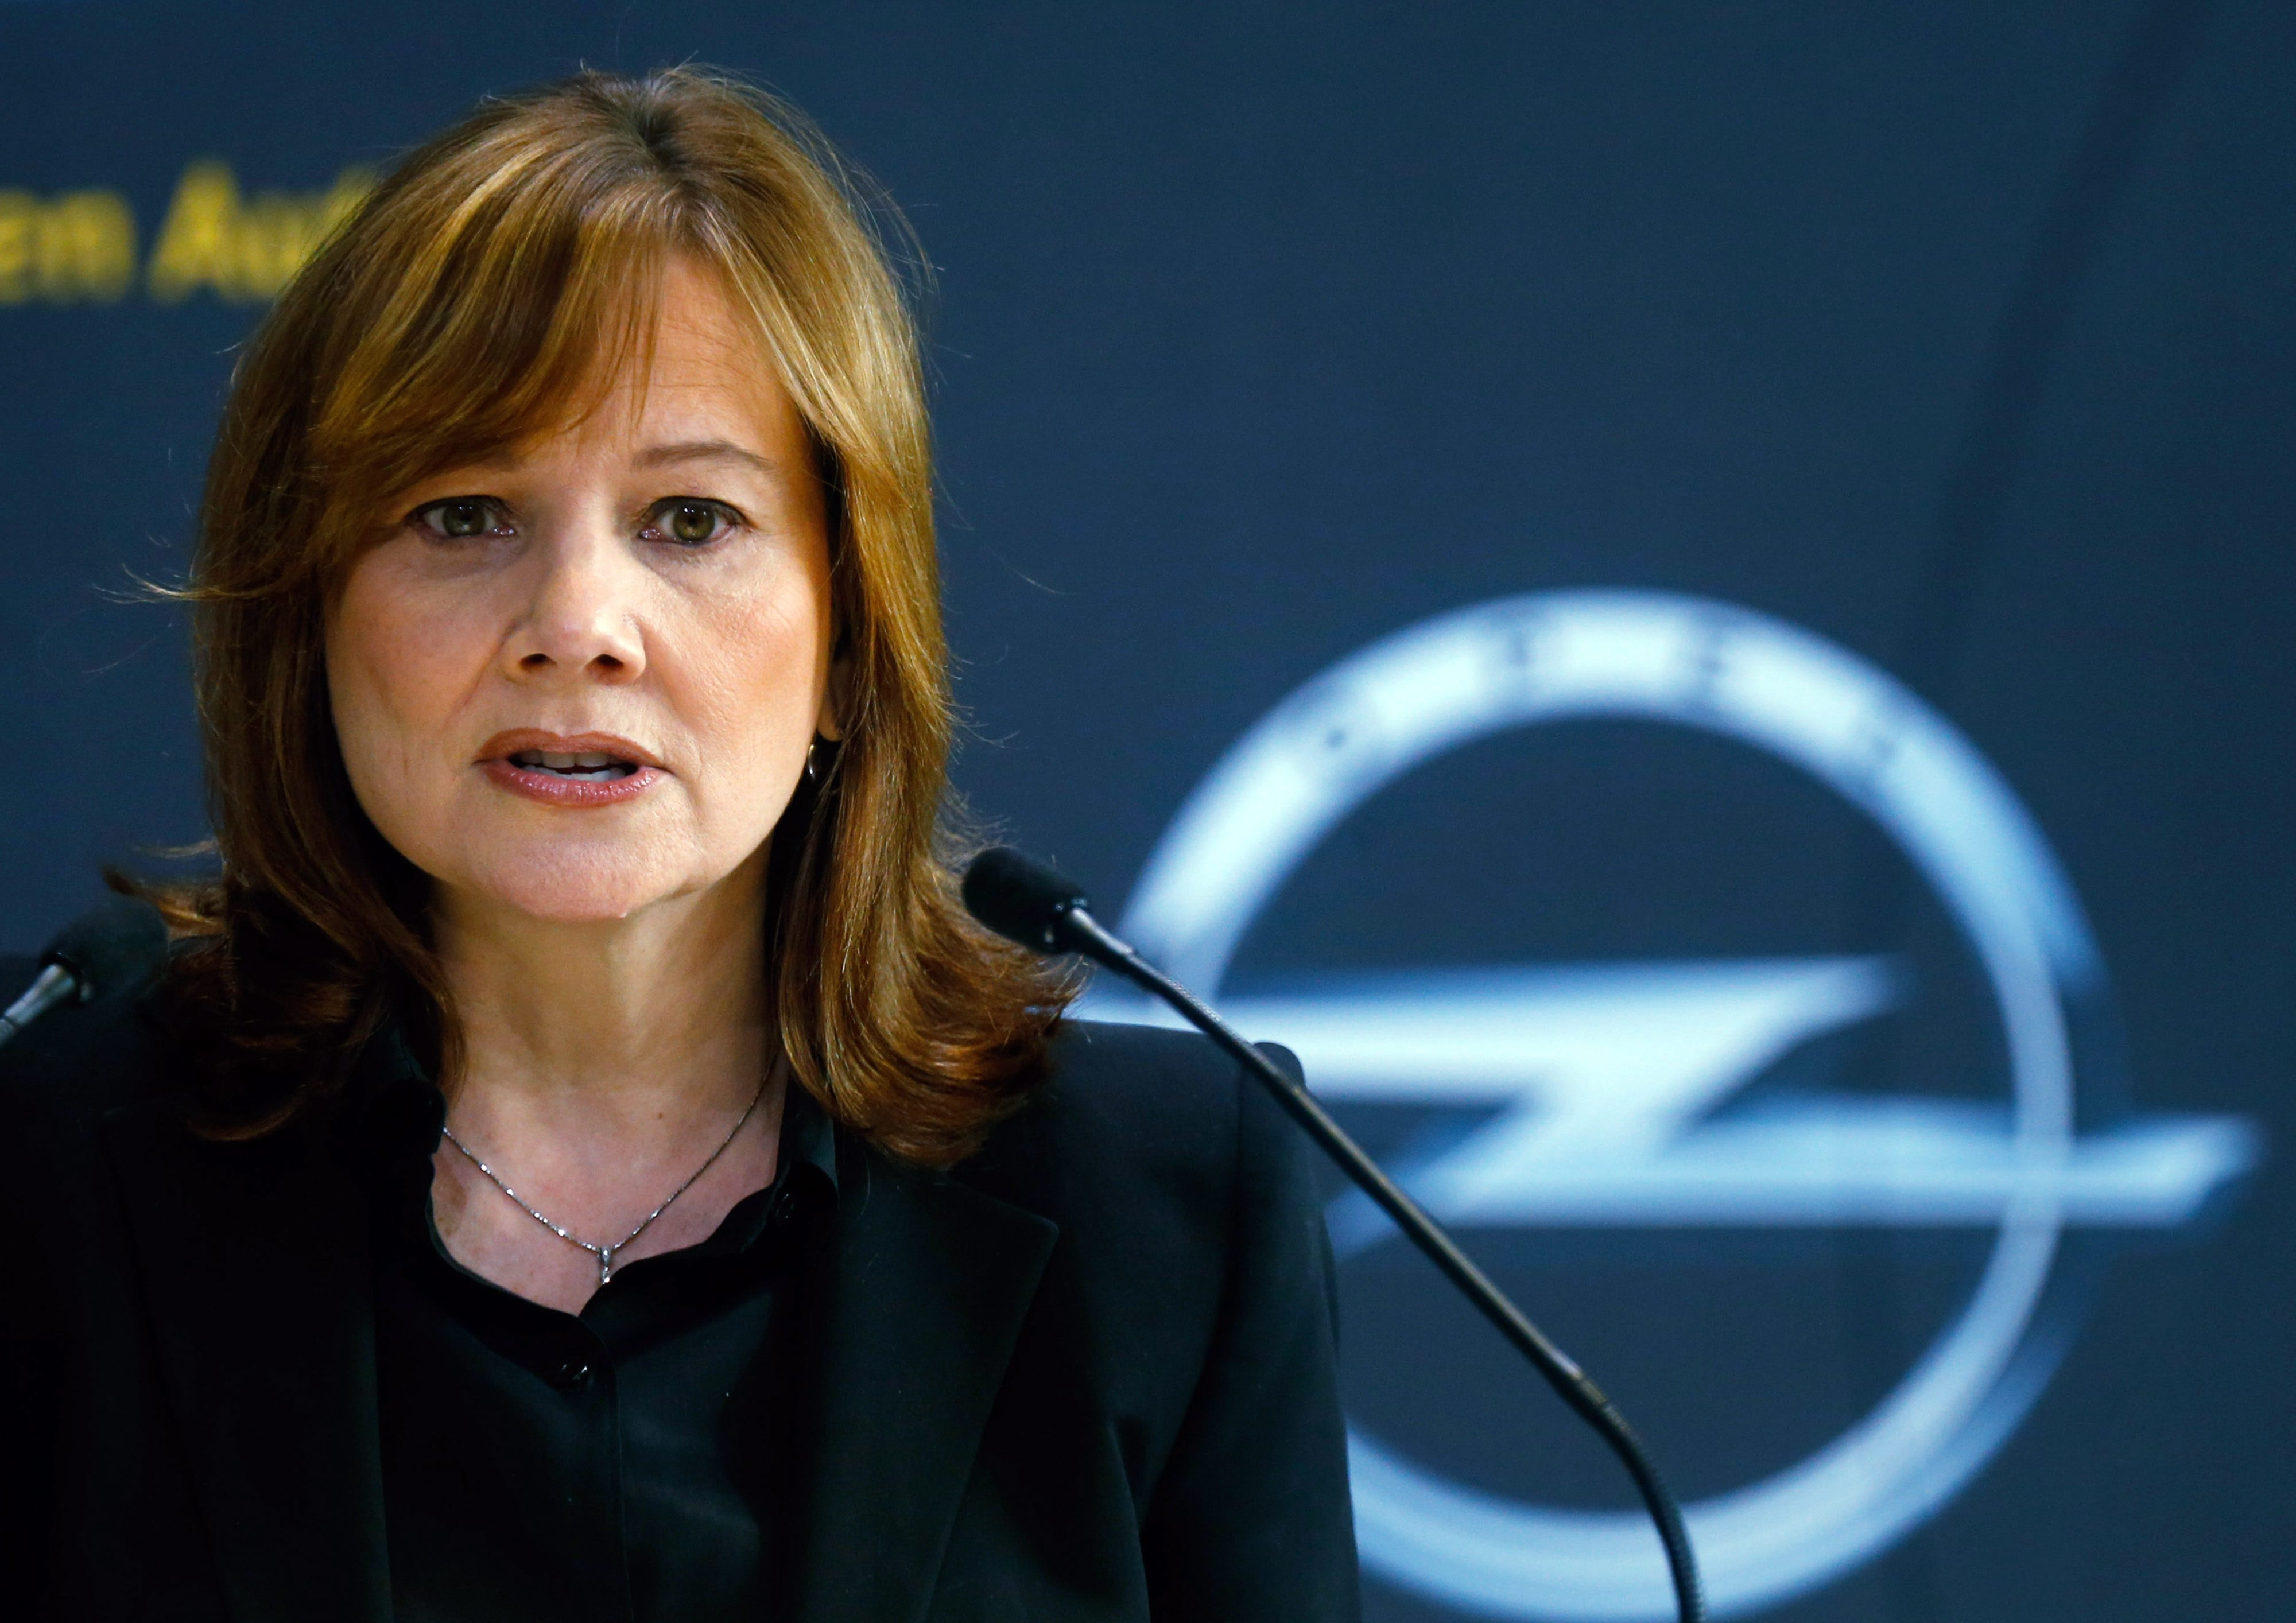 Mary Barra, the new chief executive officer of General Motors, has a bachelor's degree in electrical engineering from General Motors Institute, now called Kettering University.